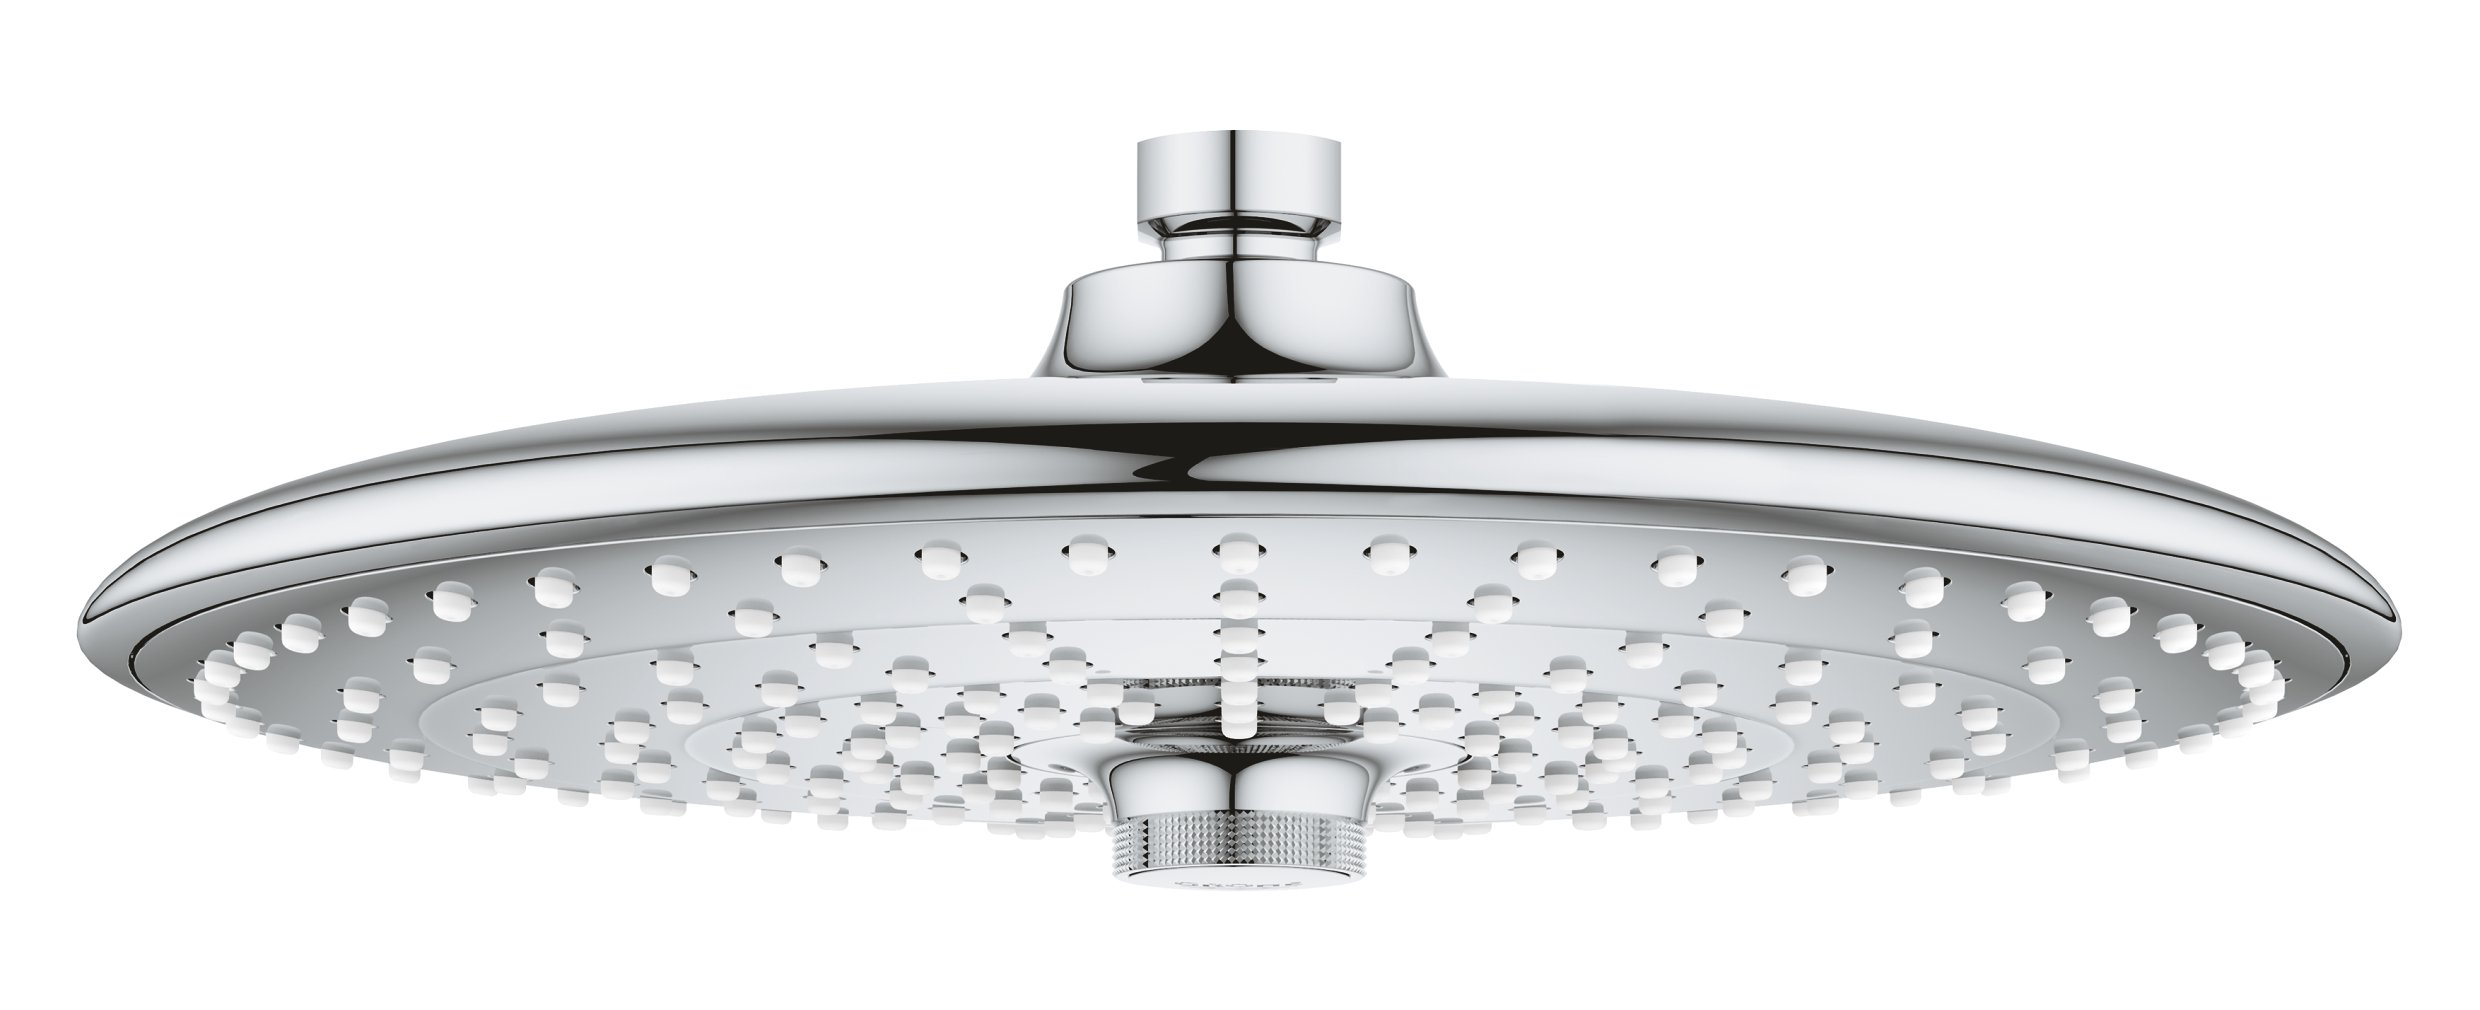 Grohe 26457000 Euphoria 260 Shower Head with 3 Spray Patterns, 2.5 gpm, StarLight Chrome by GROHE